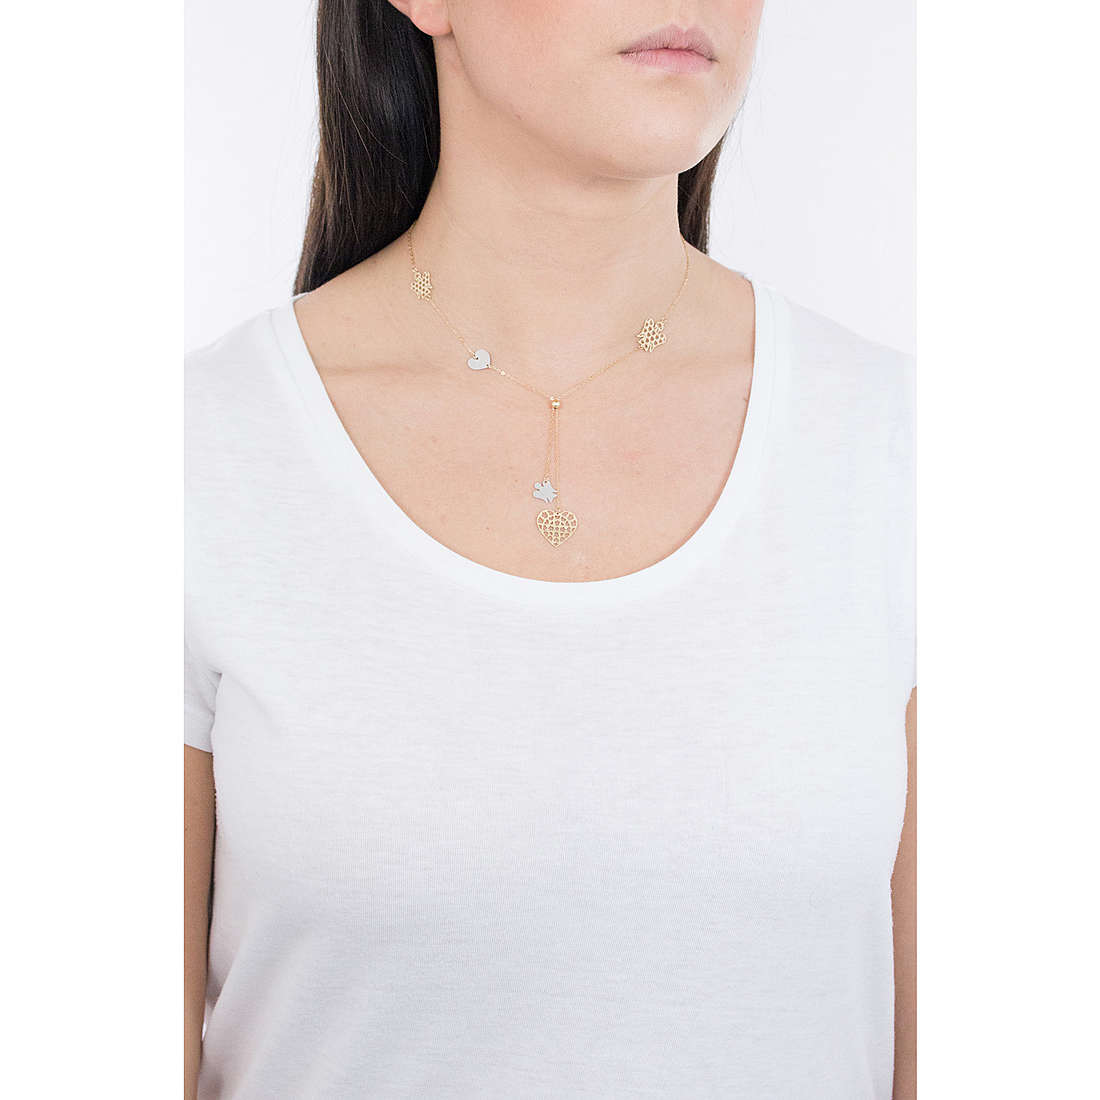 Giannotti necklaces Angeli woman GIANNOTTINKT225 photo wearing